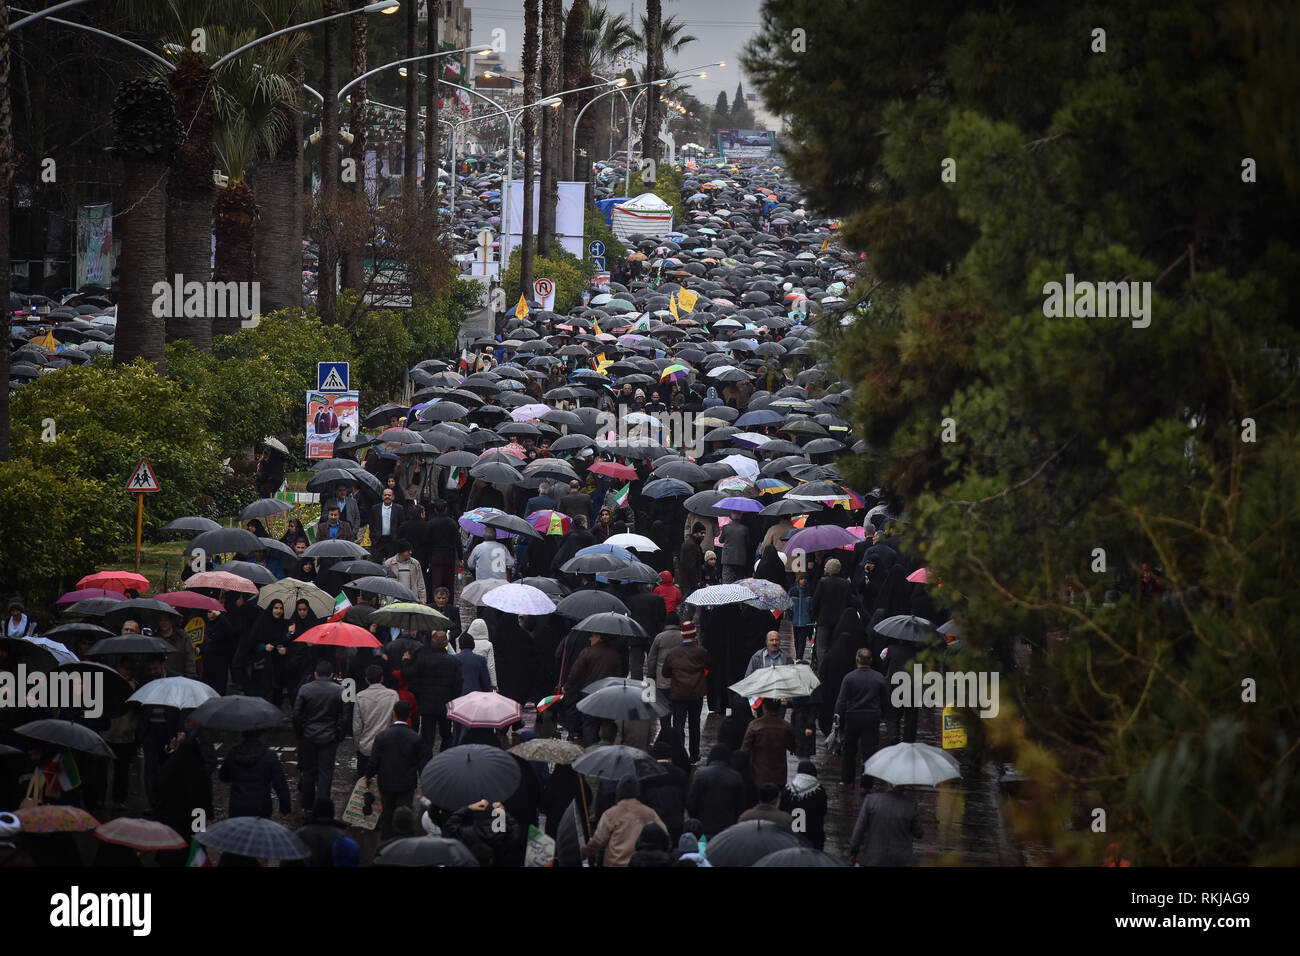 Iranians attend a ceremony celebrating the 40th anniversary of their Islamic Revolution, Shiraz city in Fars province, Iran, Monday. Feb. 11, 2019. Hundreds of thousands of people poured out onto the streets of Shiraz and other cities, towns and provinces across Iran, marking the date 40 years ago that is considered as victory day in the country's 1979 Islamic revolution. - Stock Image